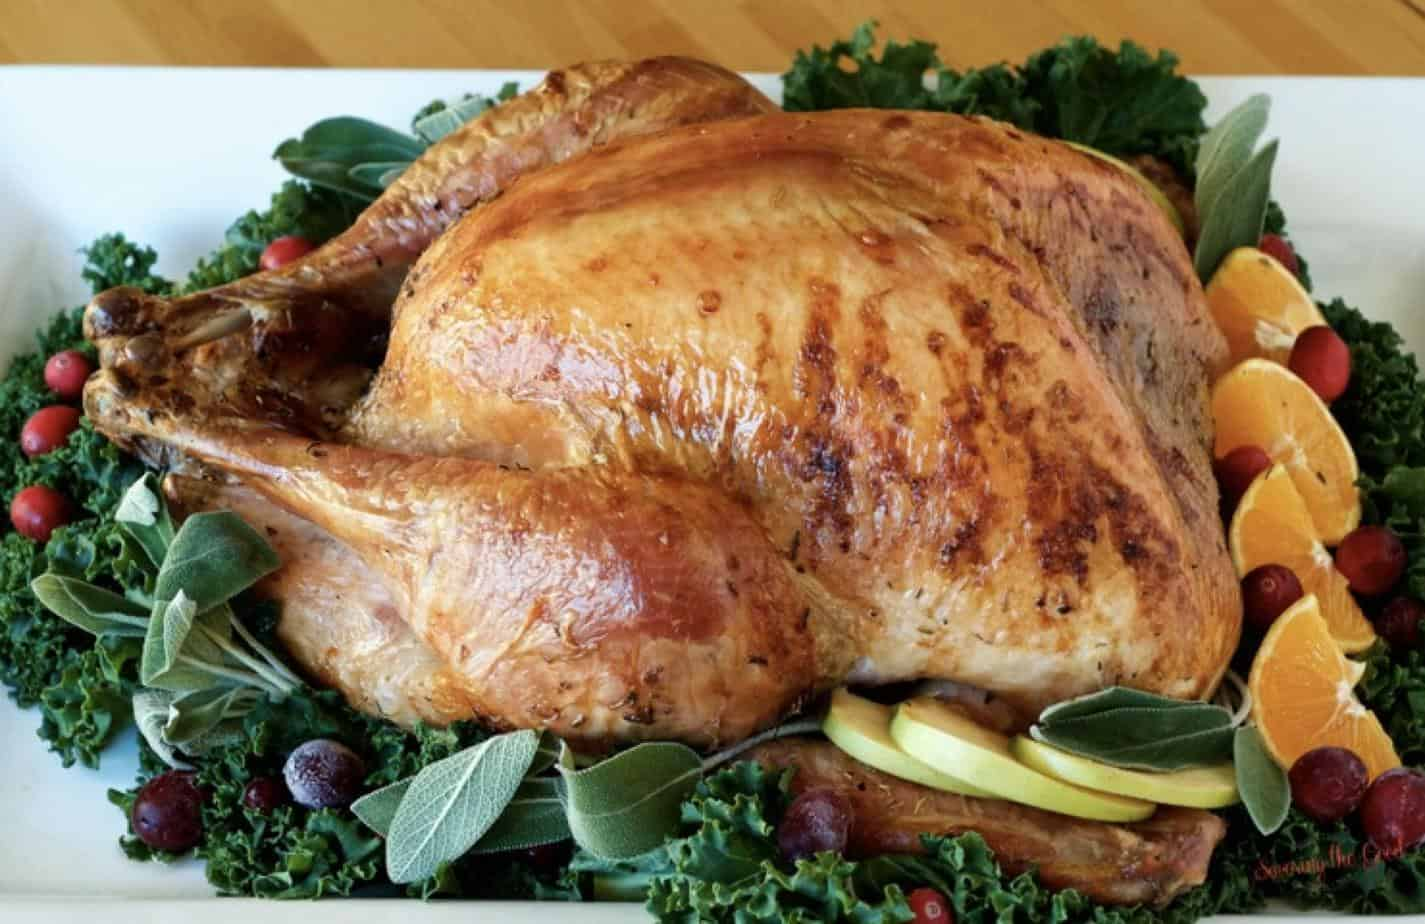 easy-juicy-oven-roasted-brined-thanksgiving-turkey-recipe-7